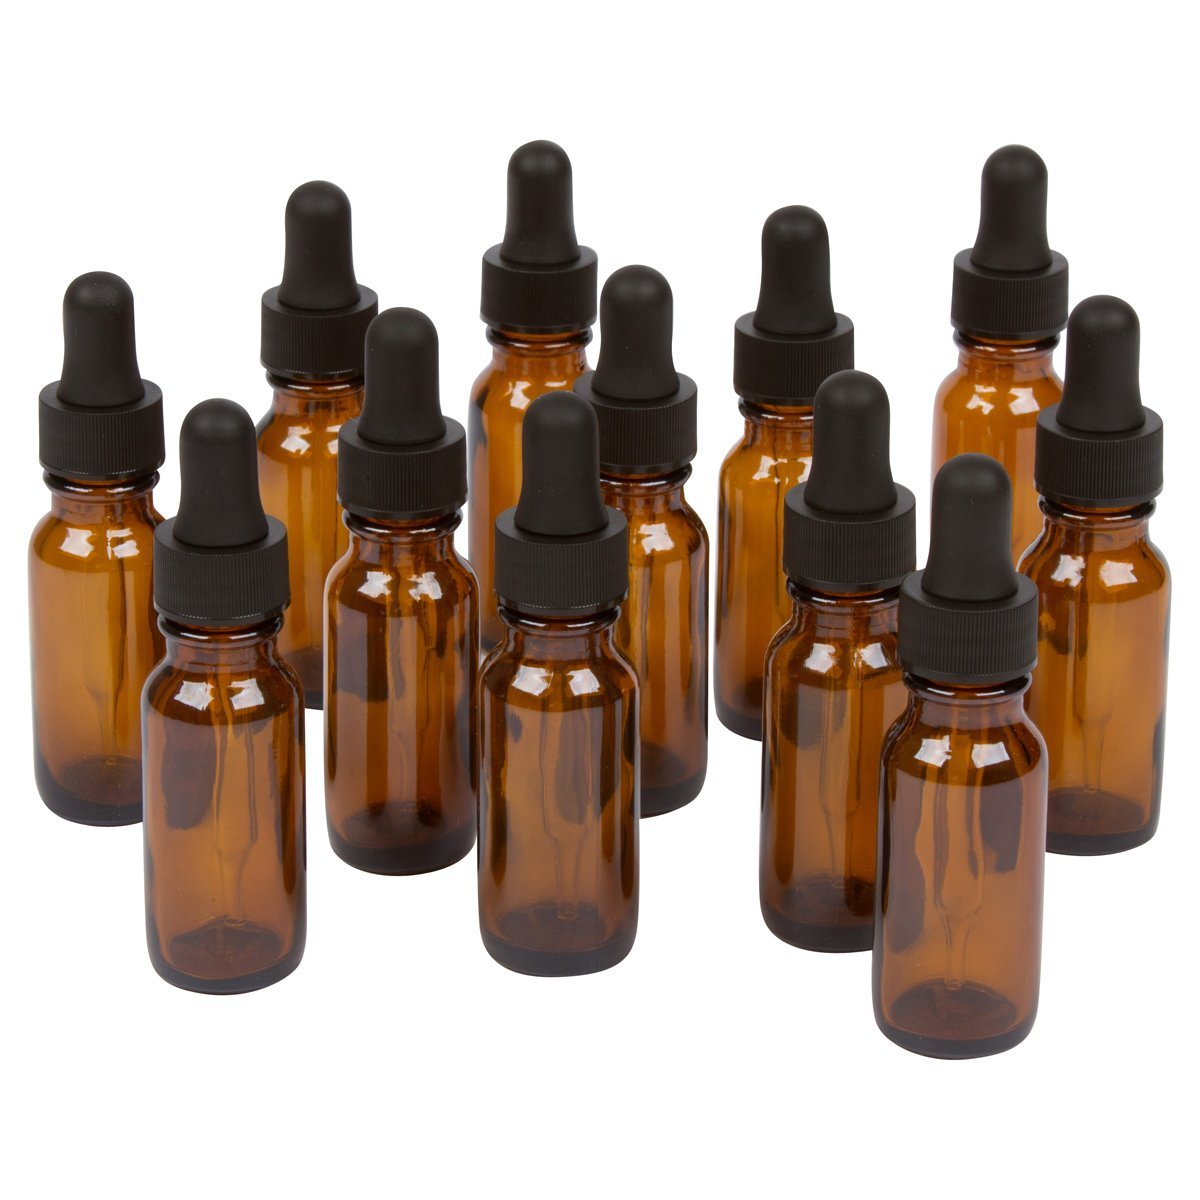 Amber Round Bottles for Essential Oils and Liquids with Black Rubber Bulb Glass Droppers, 15 ml, Pack of 12 image